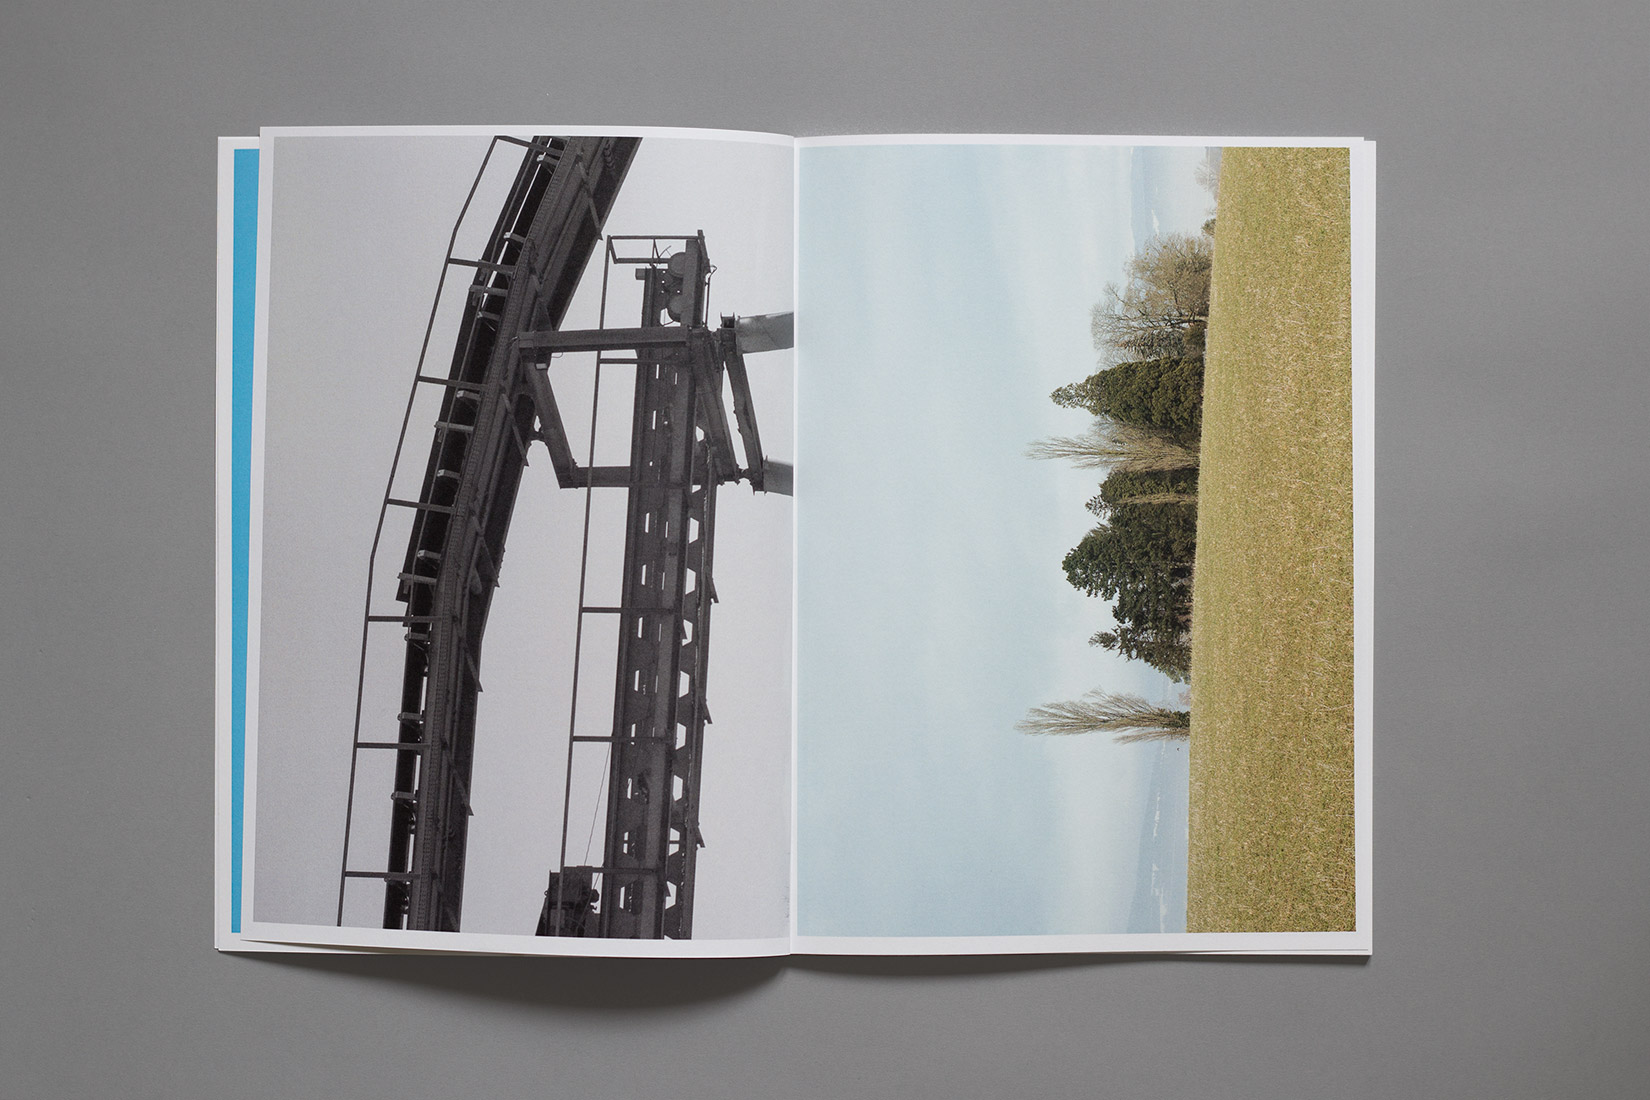 Zihlbrücke, diploma, book, graphic design, factory, Buhler Marin, fields, trees